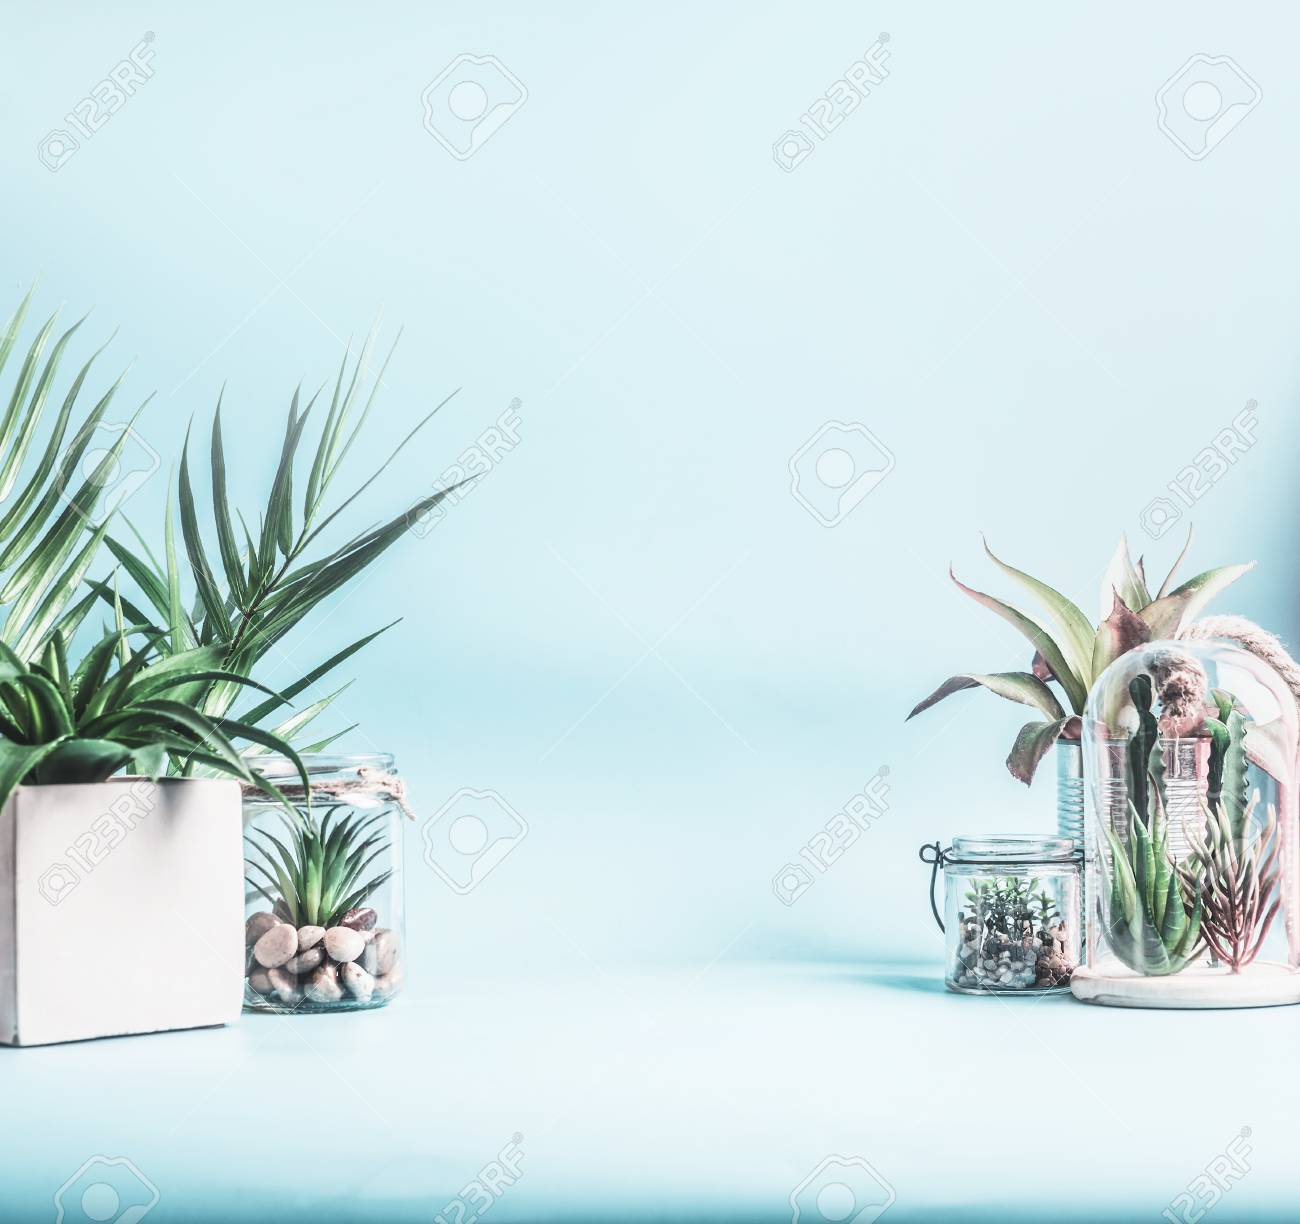 Trending Home Plant Decor Green House Plants In Pots Glass Stock Photo Picture And Royalty Free Image Image 118193437